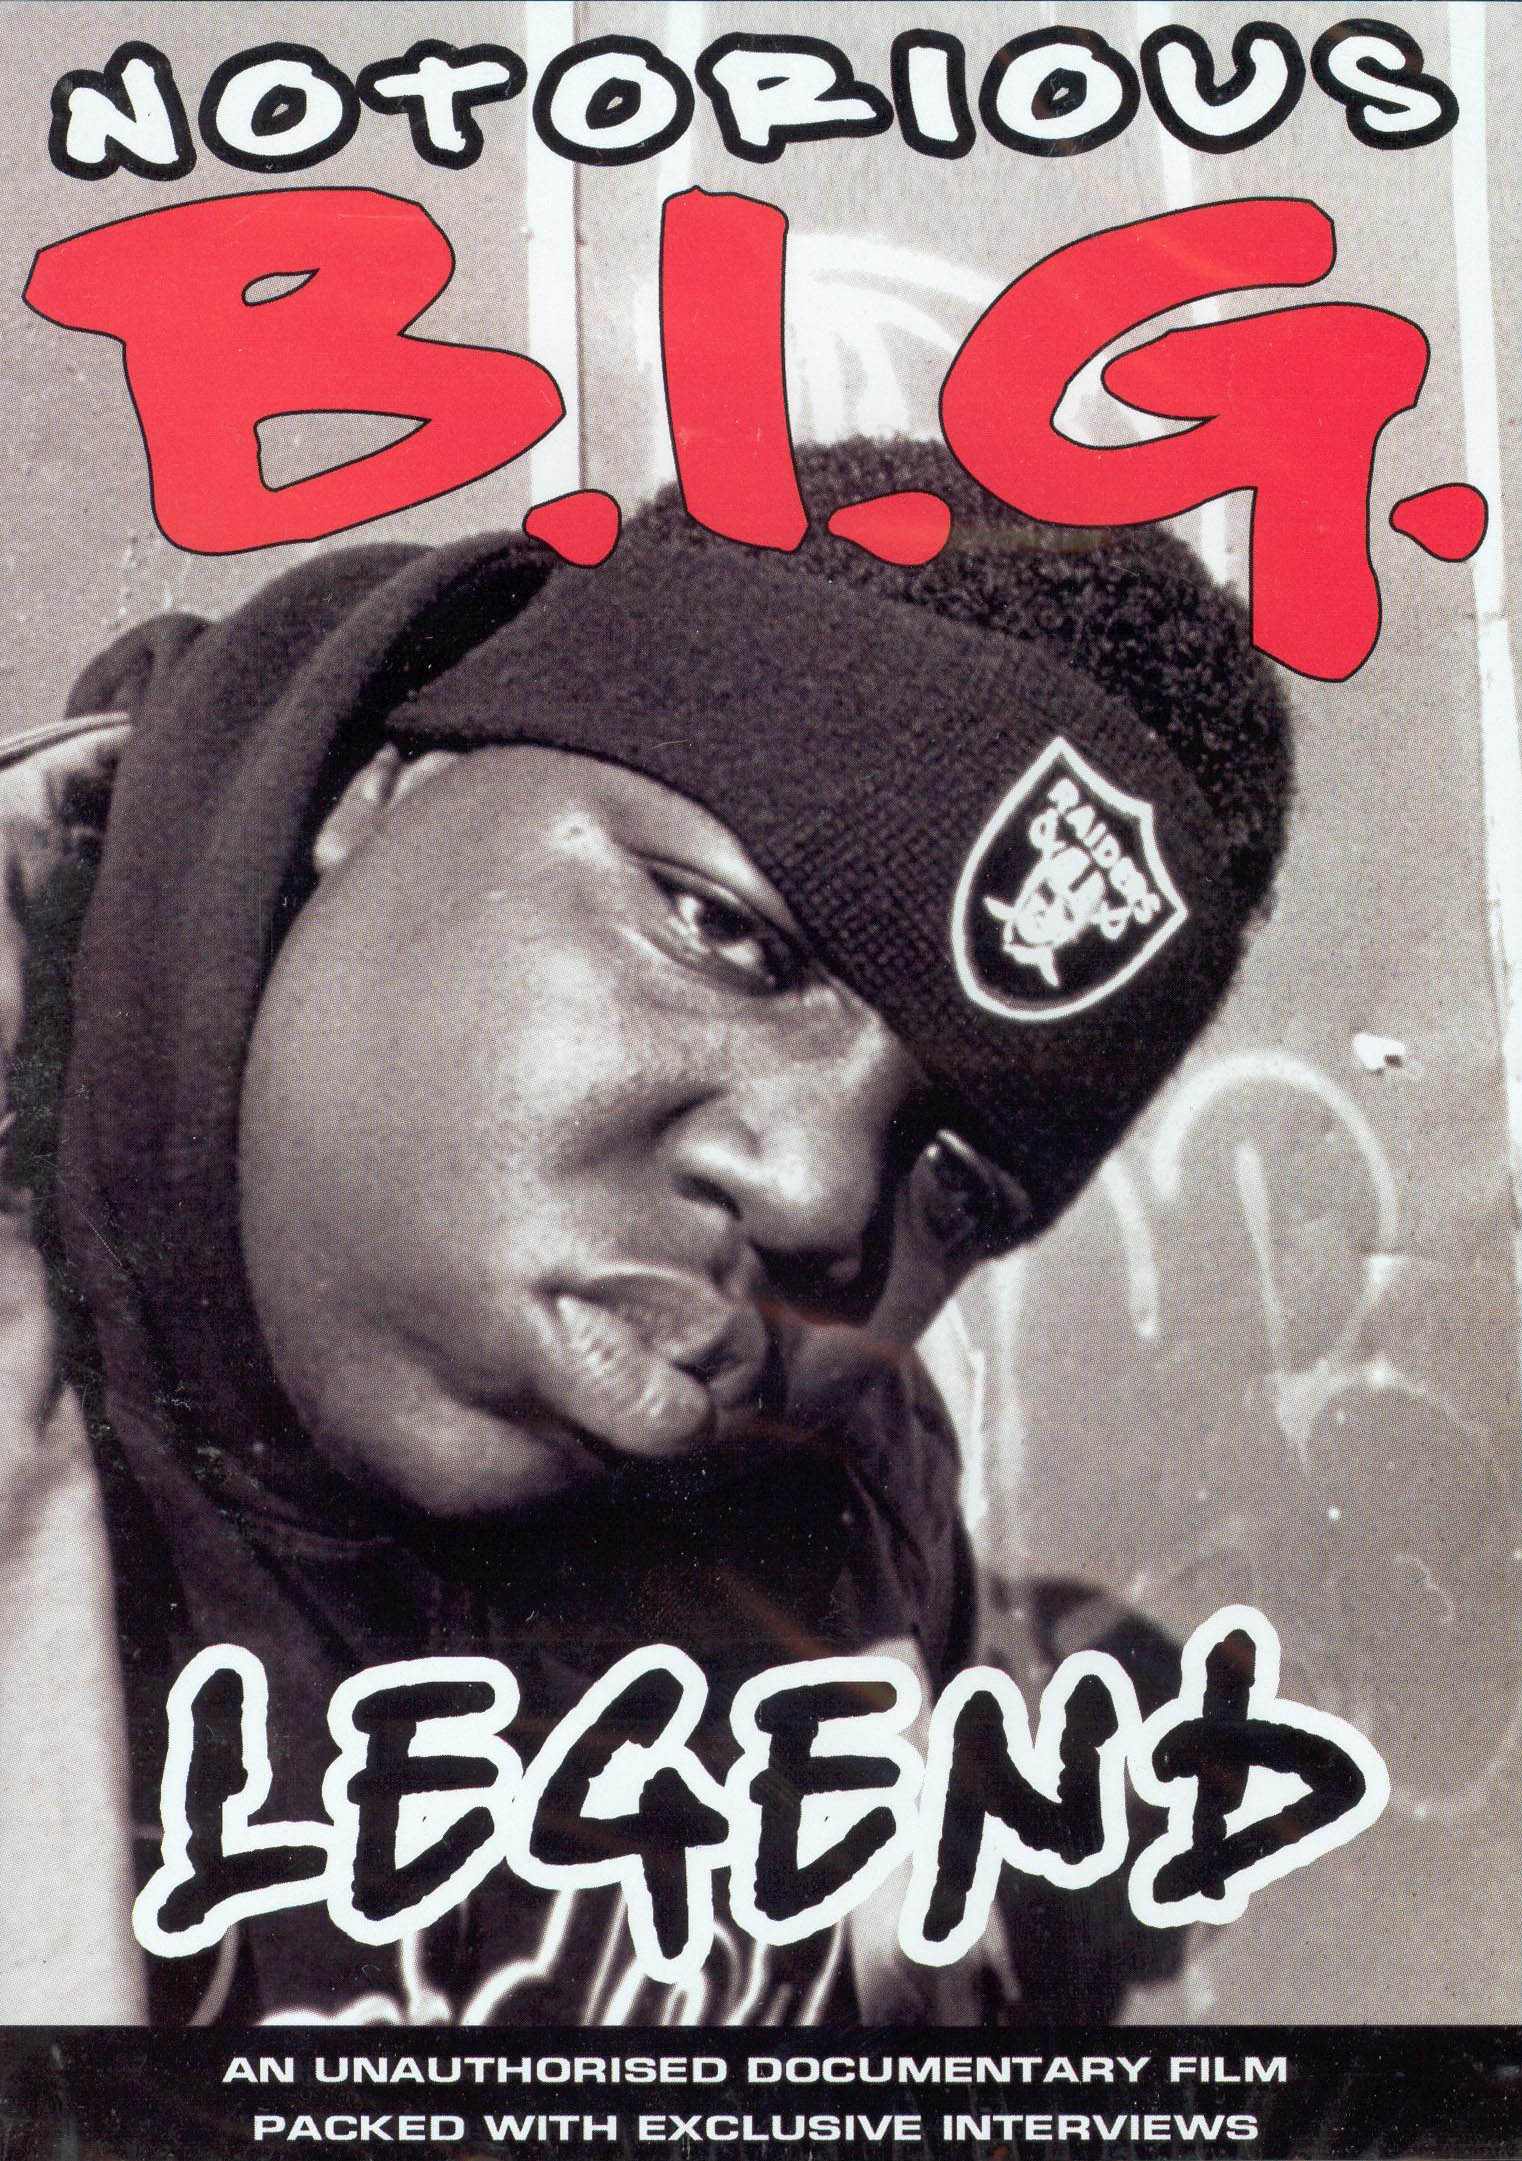 Notorious B.I.G.: The Legend Unauthorized